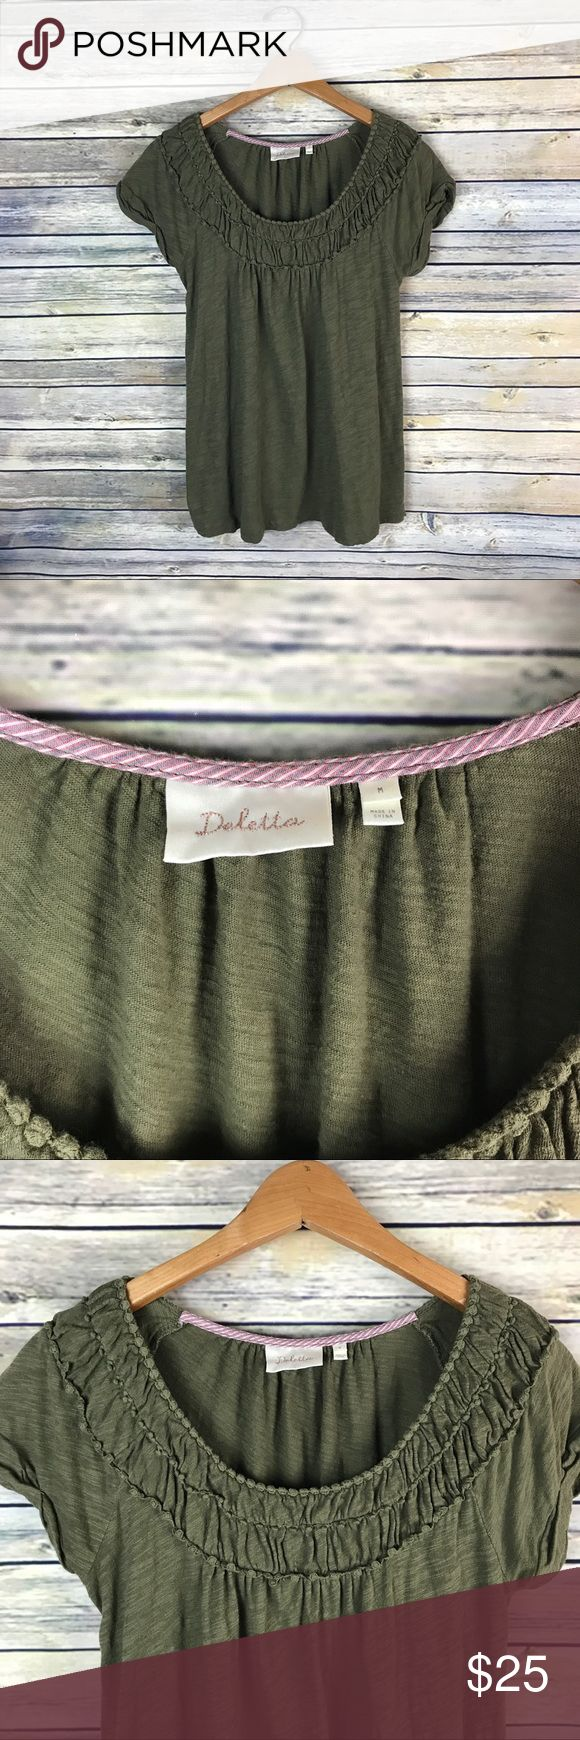 """Deletta Anthropologie Olive Green Short Sleeve Top Super cute short sleeve olive green loose fitting knit top. Has some detailing around the neckline. Scoop neckline. Gently used with no flaws!   Measurements laying flat (without stretching)—  Armpit to armpit: 20"""" Length, shoulder to hem: 26"""" Anthropologie Tops"""